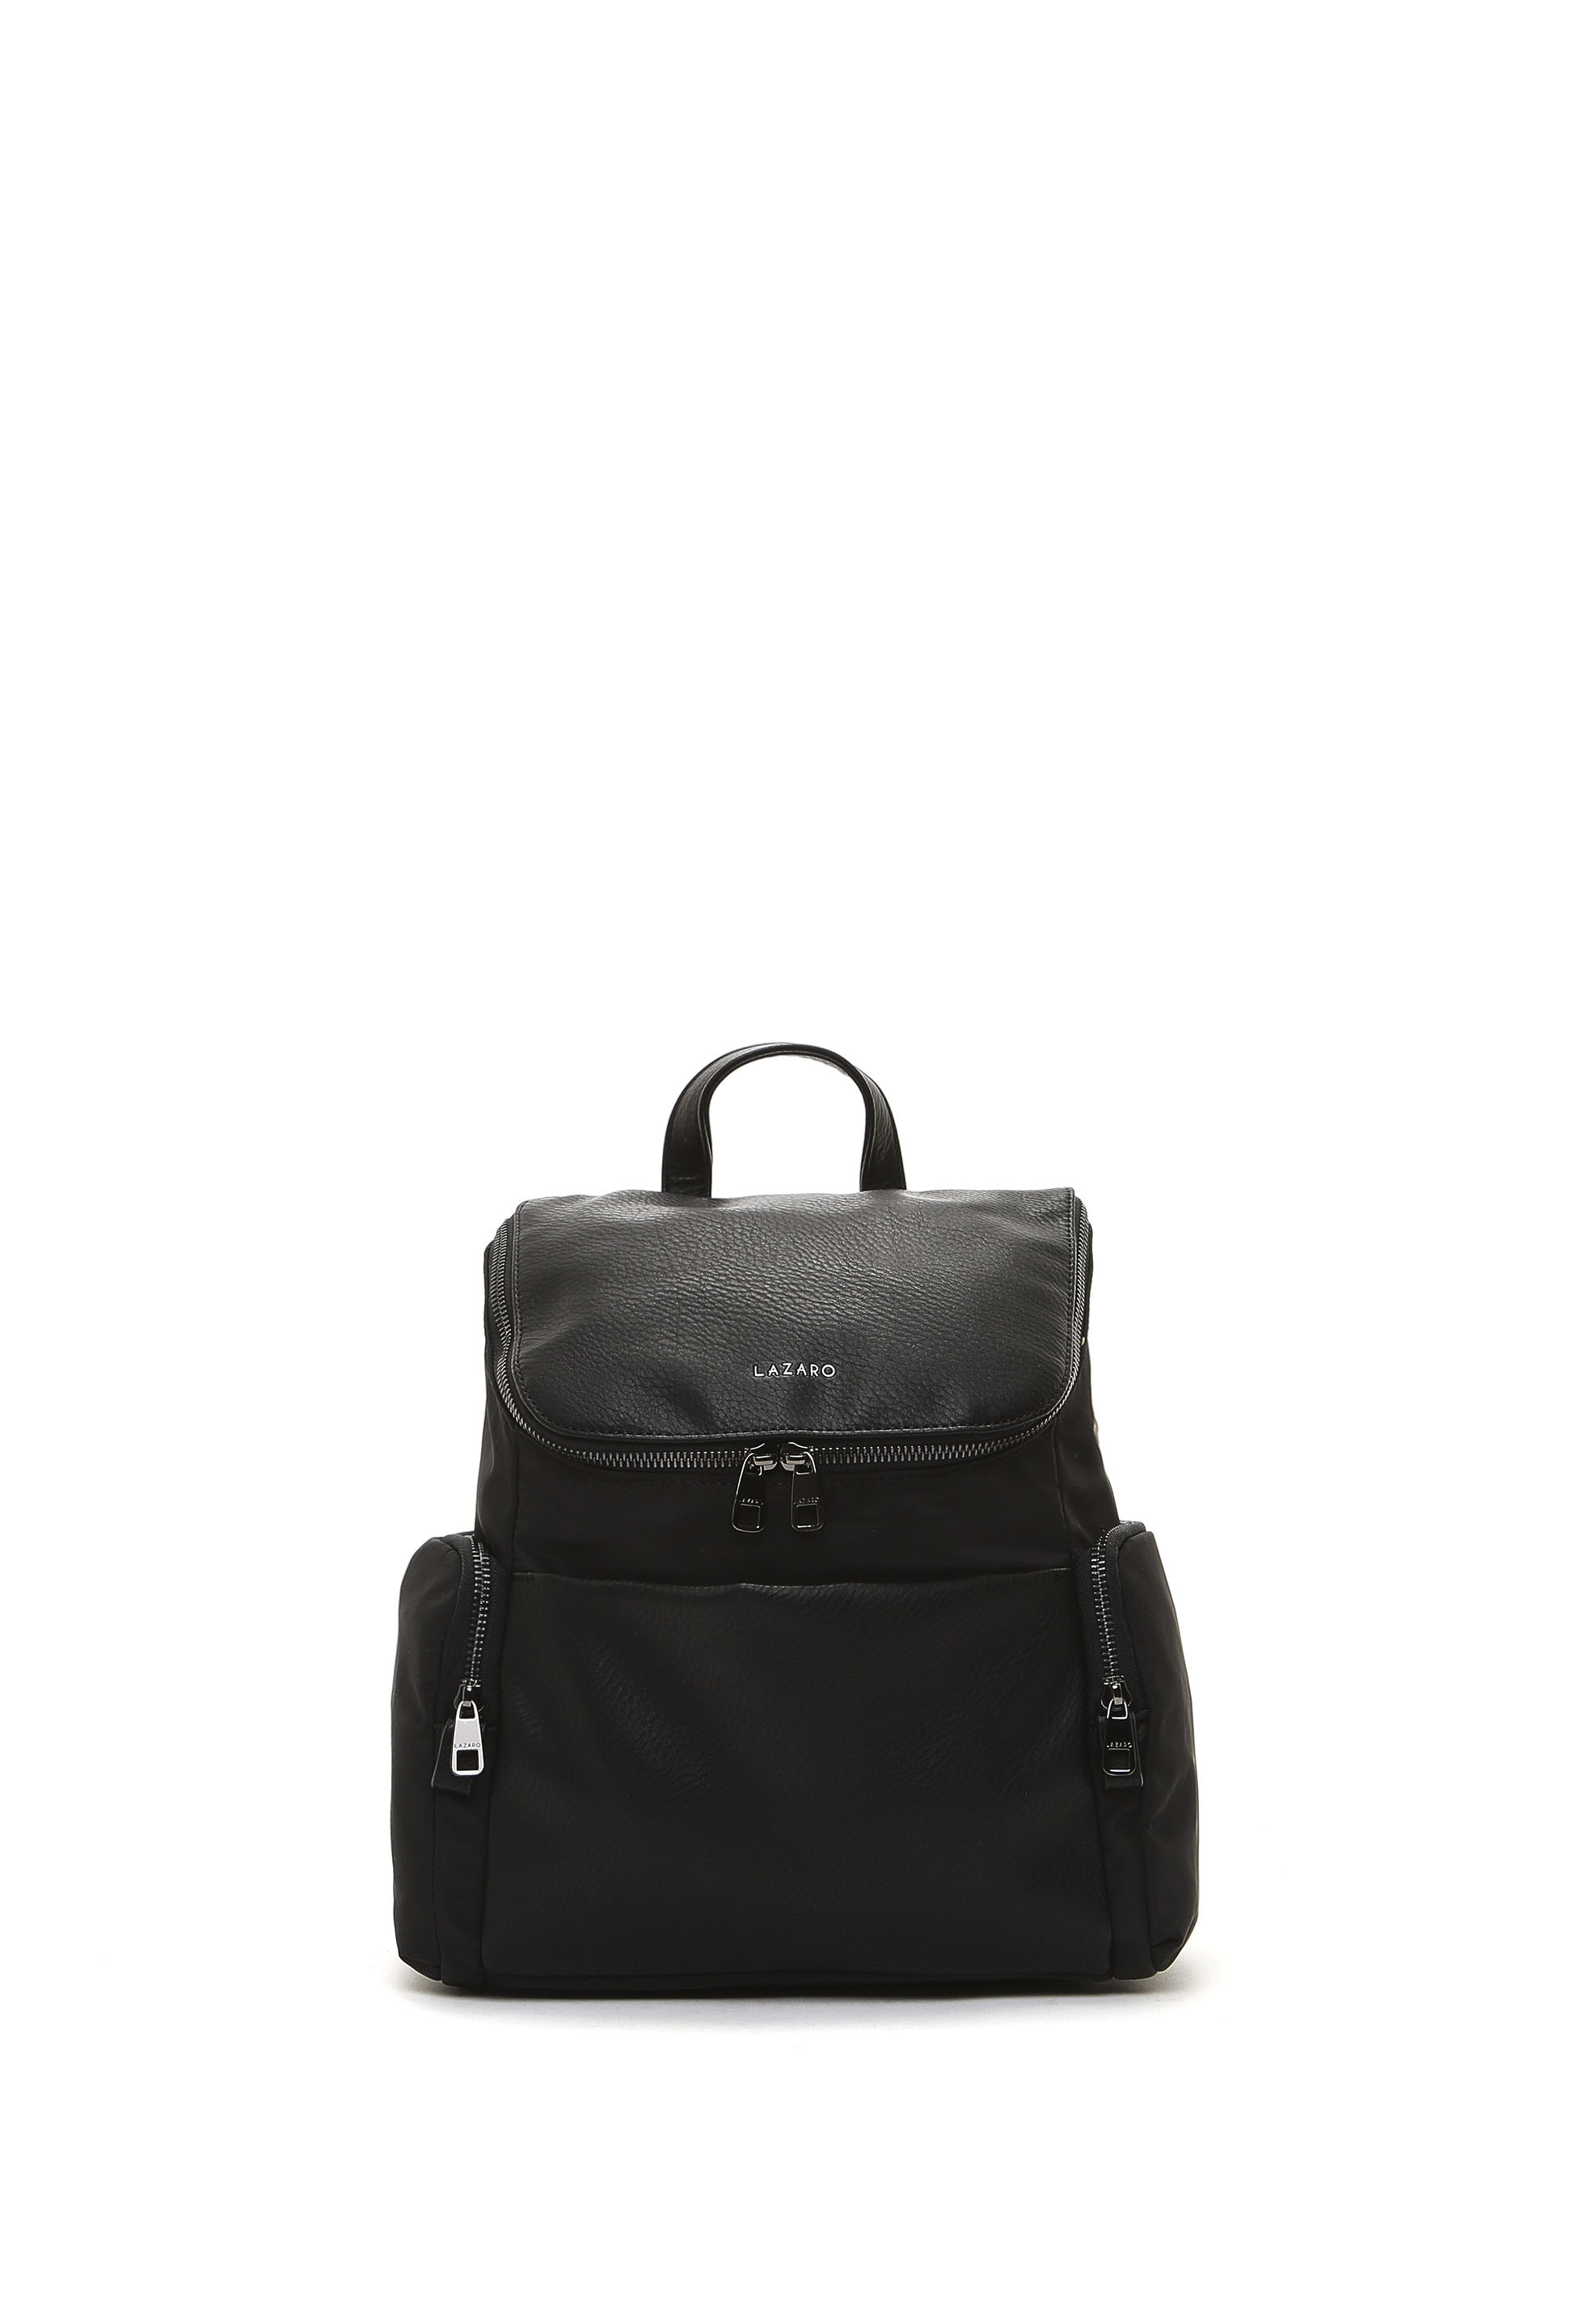 Lazaro Mochila London black